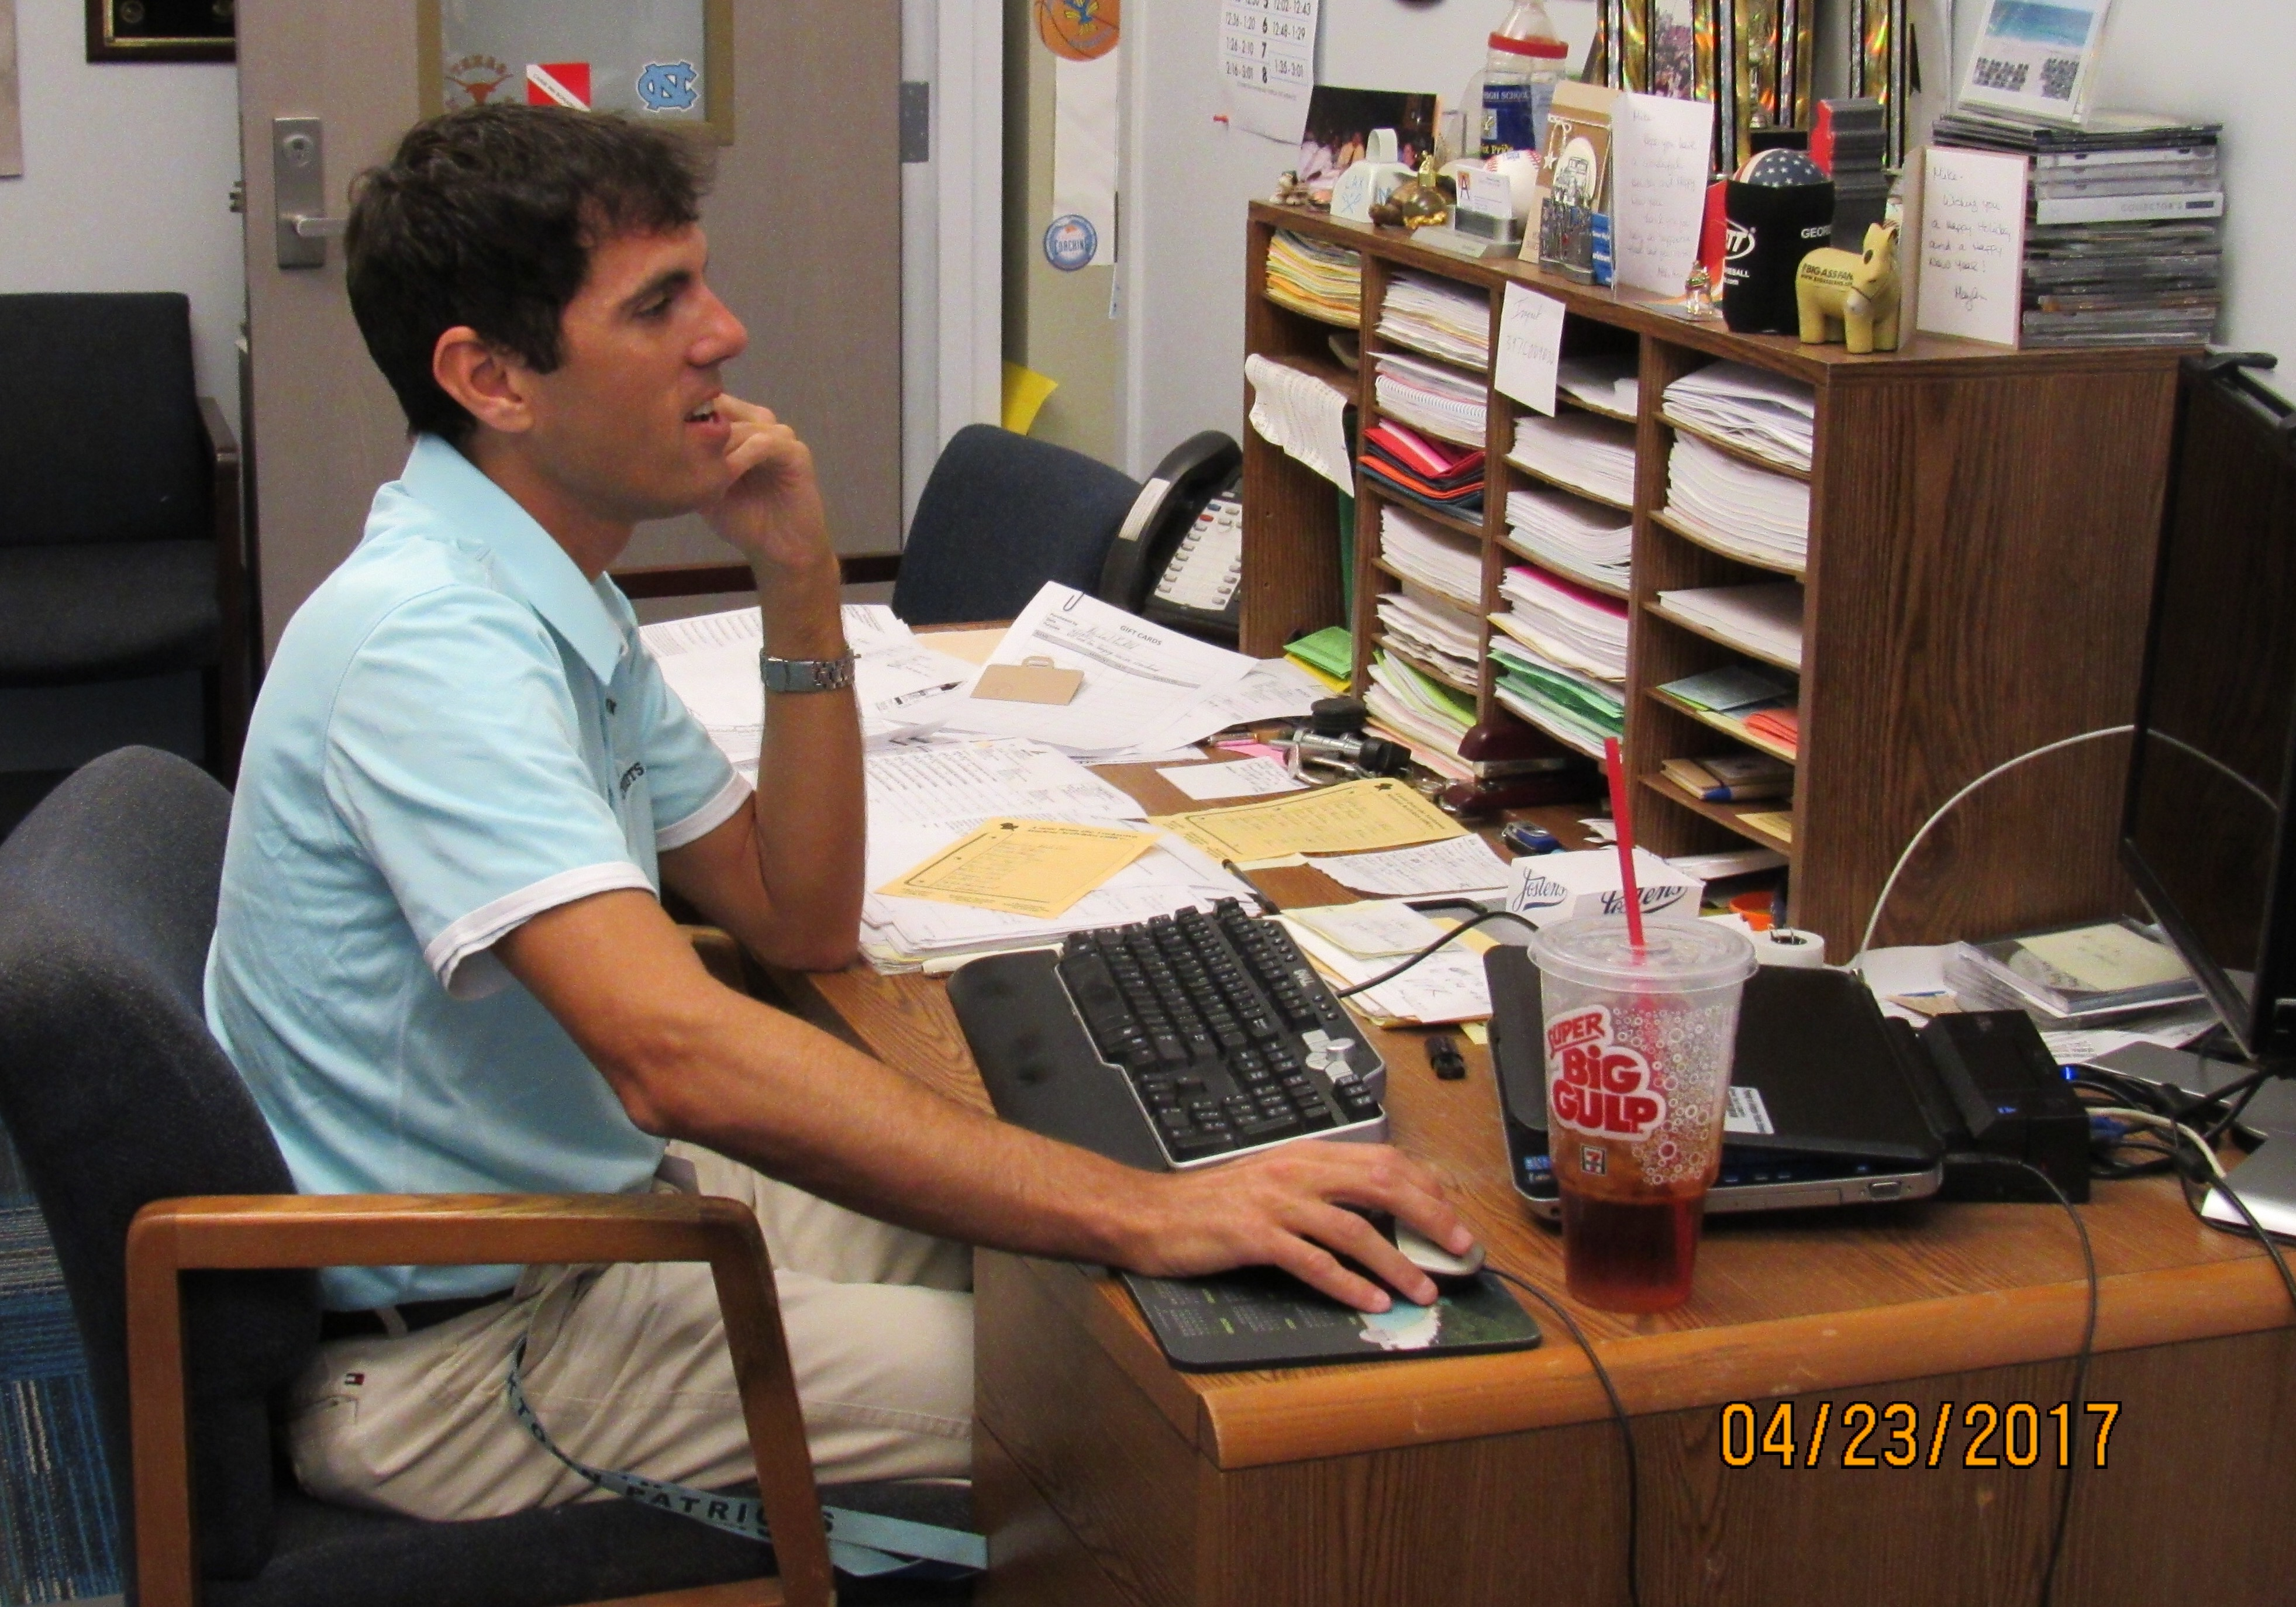 Krulfeeld, the Director of Student Activities, has a busy life at school